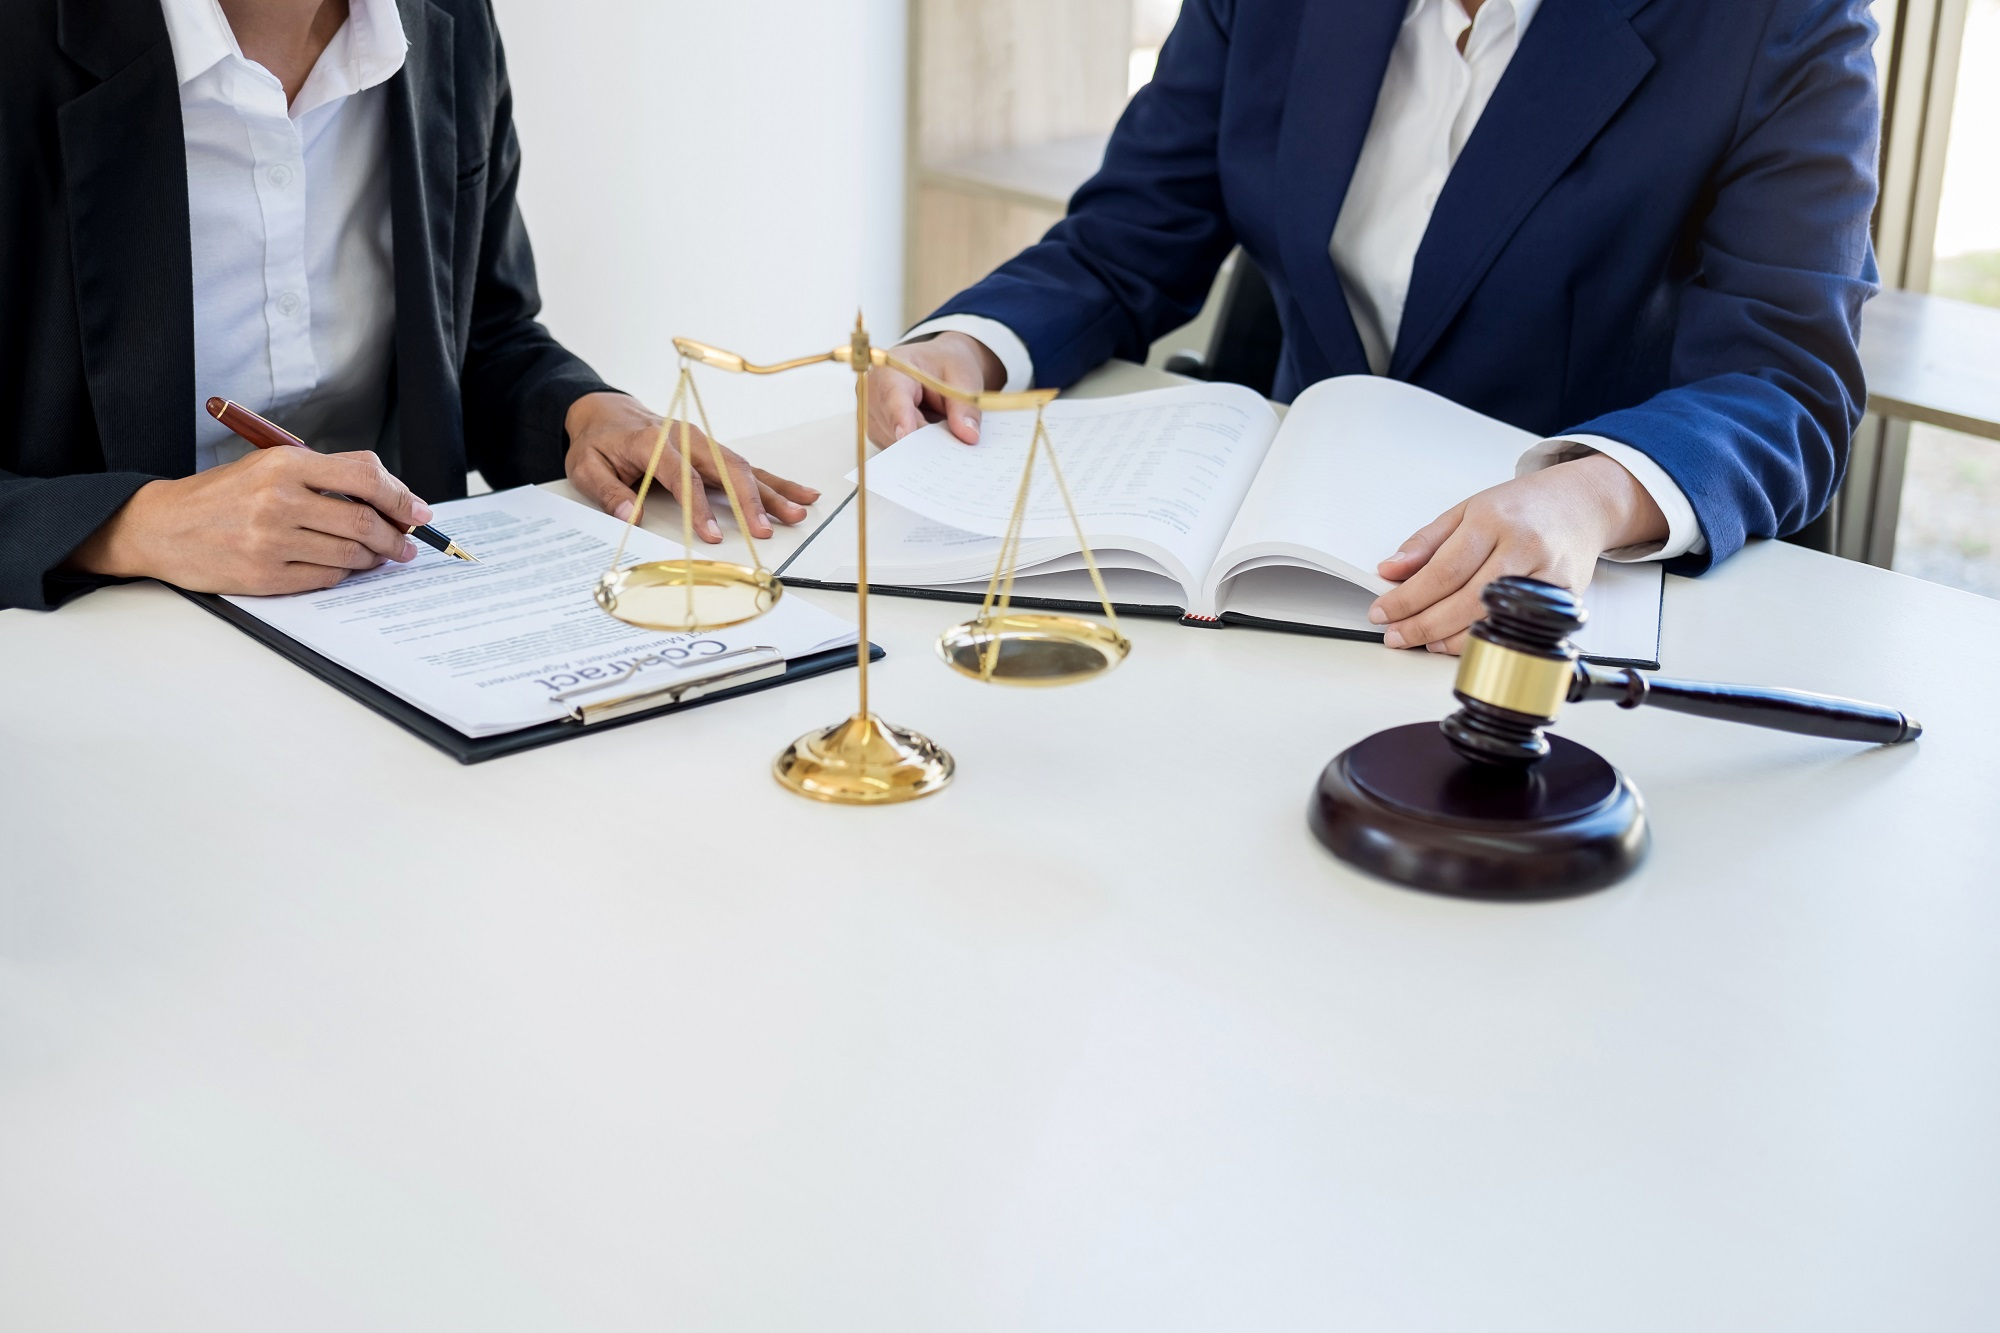 two people with documents